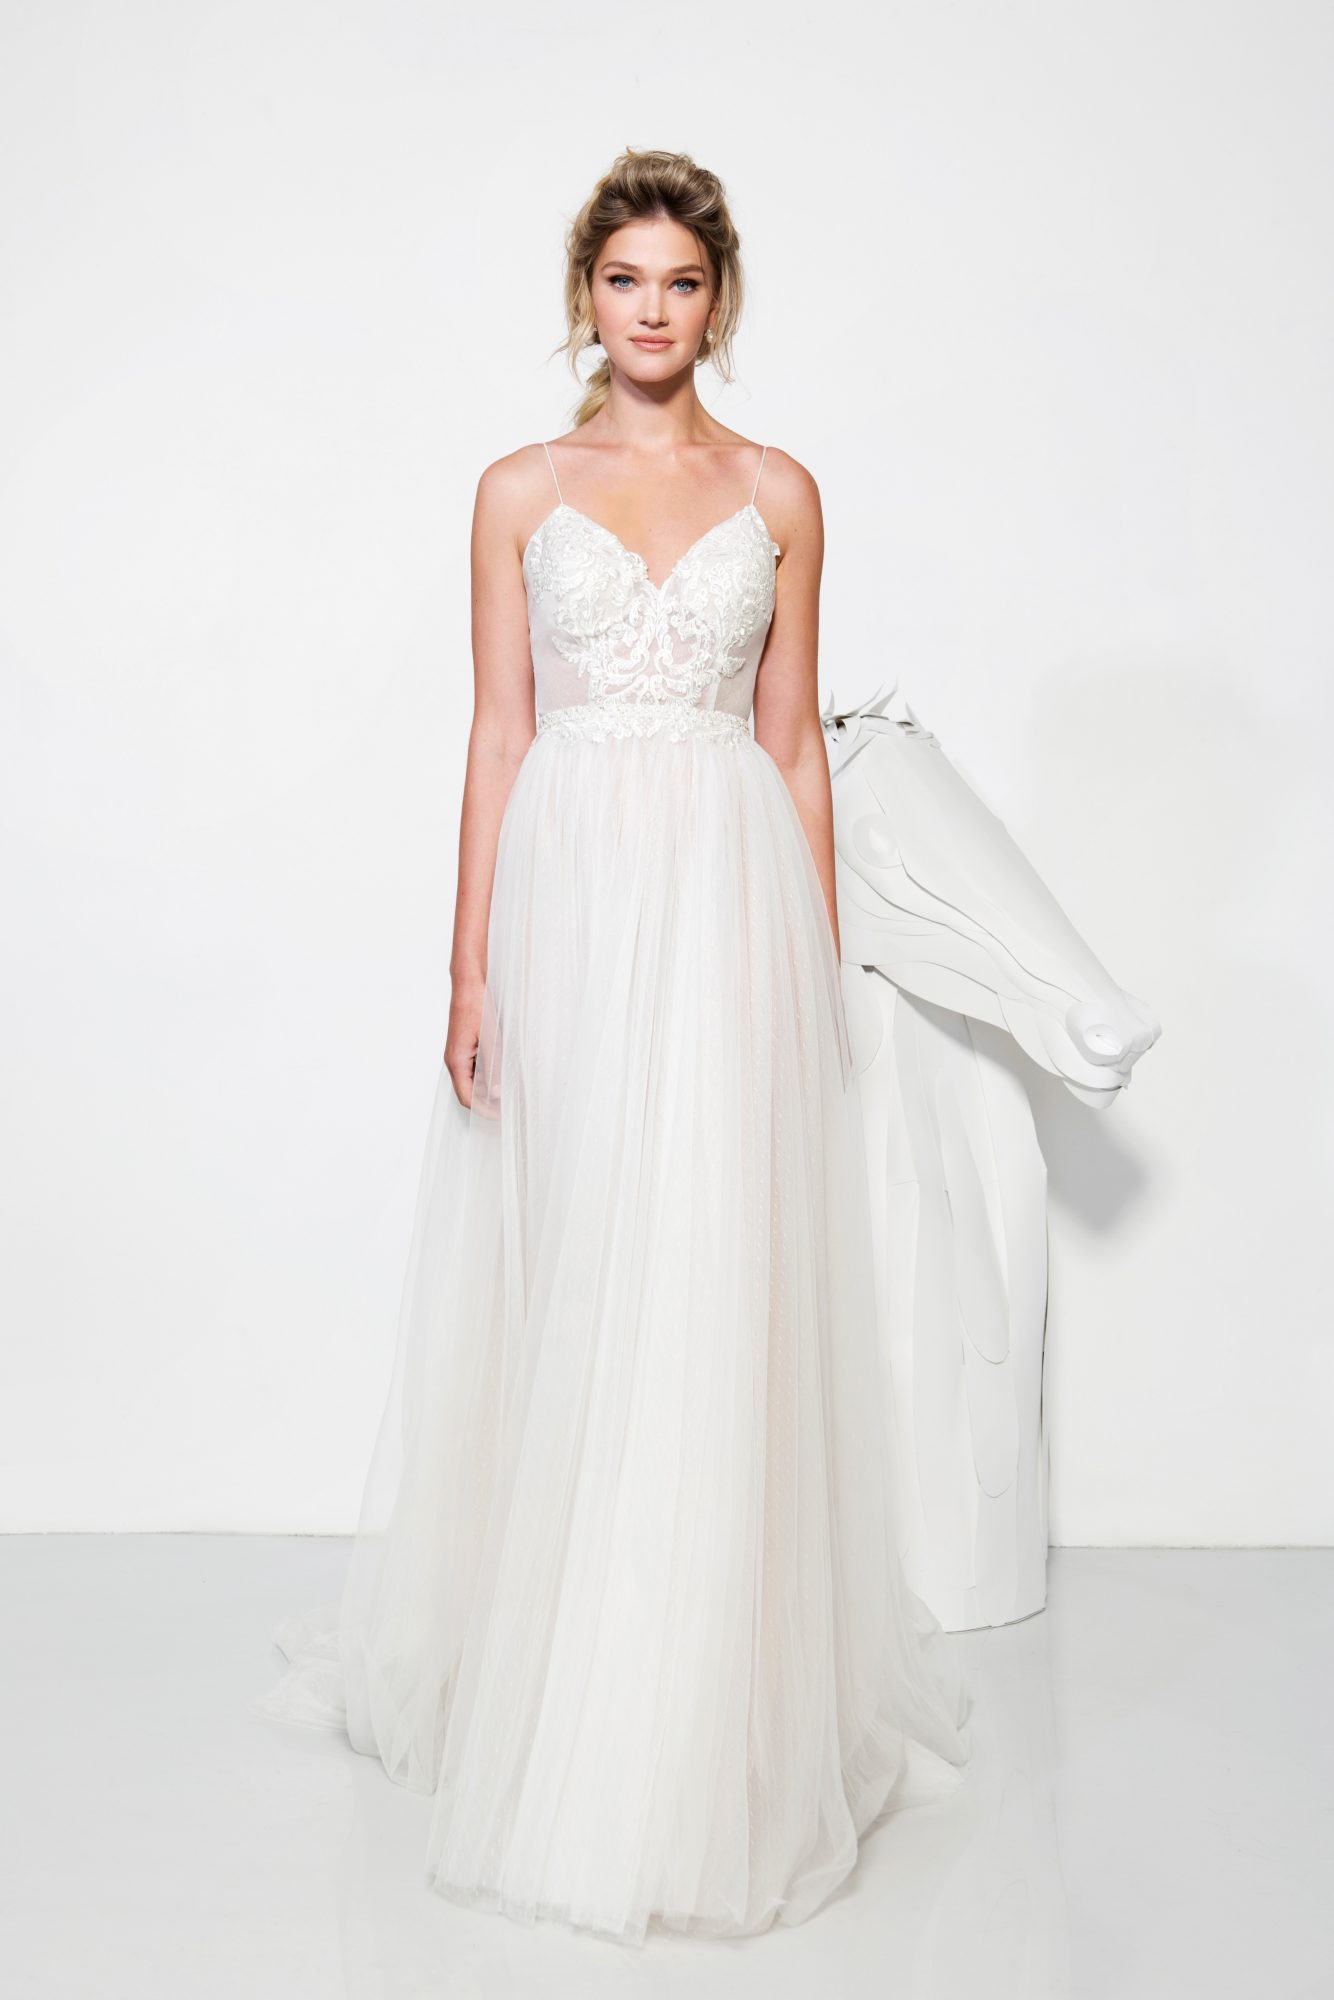 lavish by yaniv persy wedding dress spring 2019 spaghetti straps a-line tulle